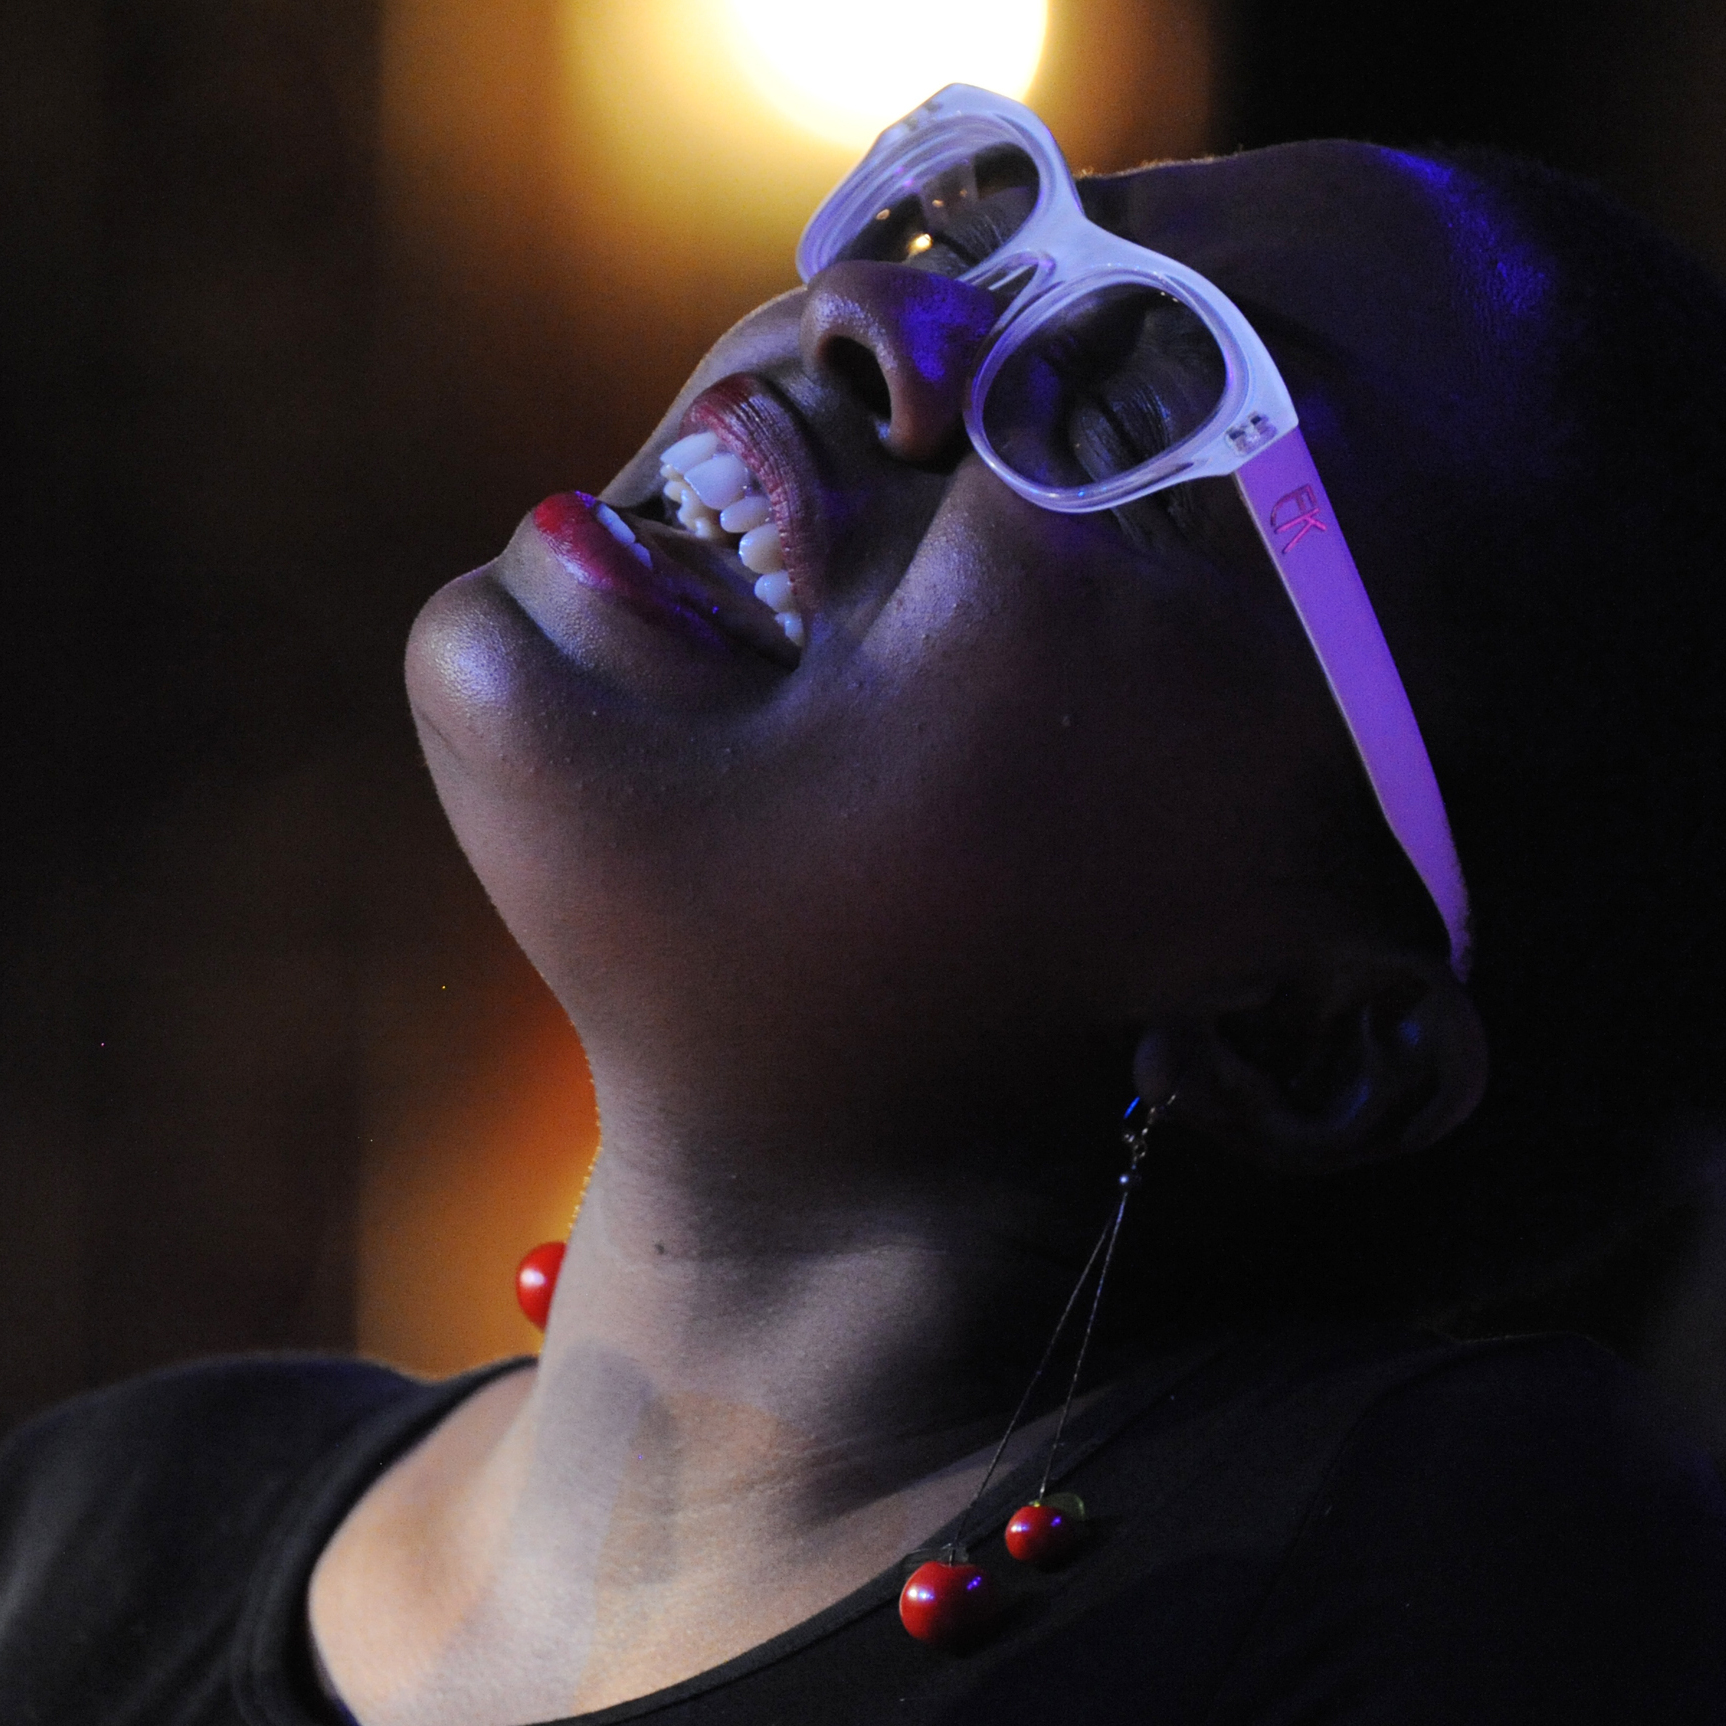 Miami-born Cécile McLorin Salvant learned about improvisation and sang with her first band after moving to France in 200